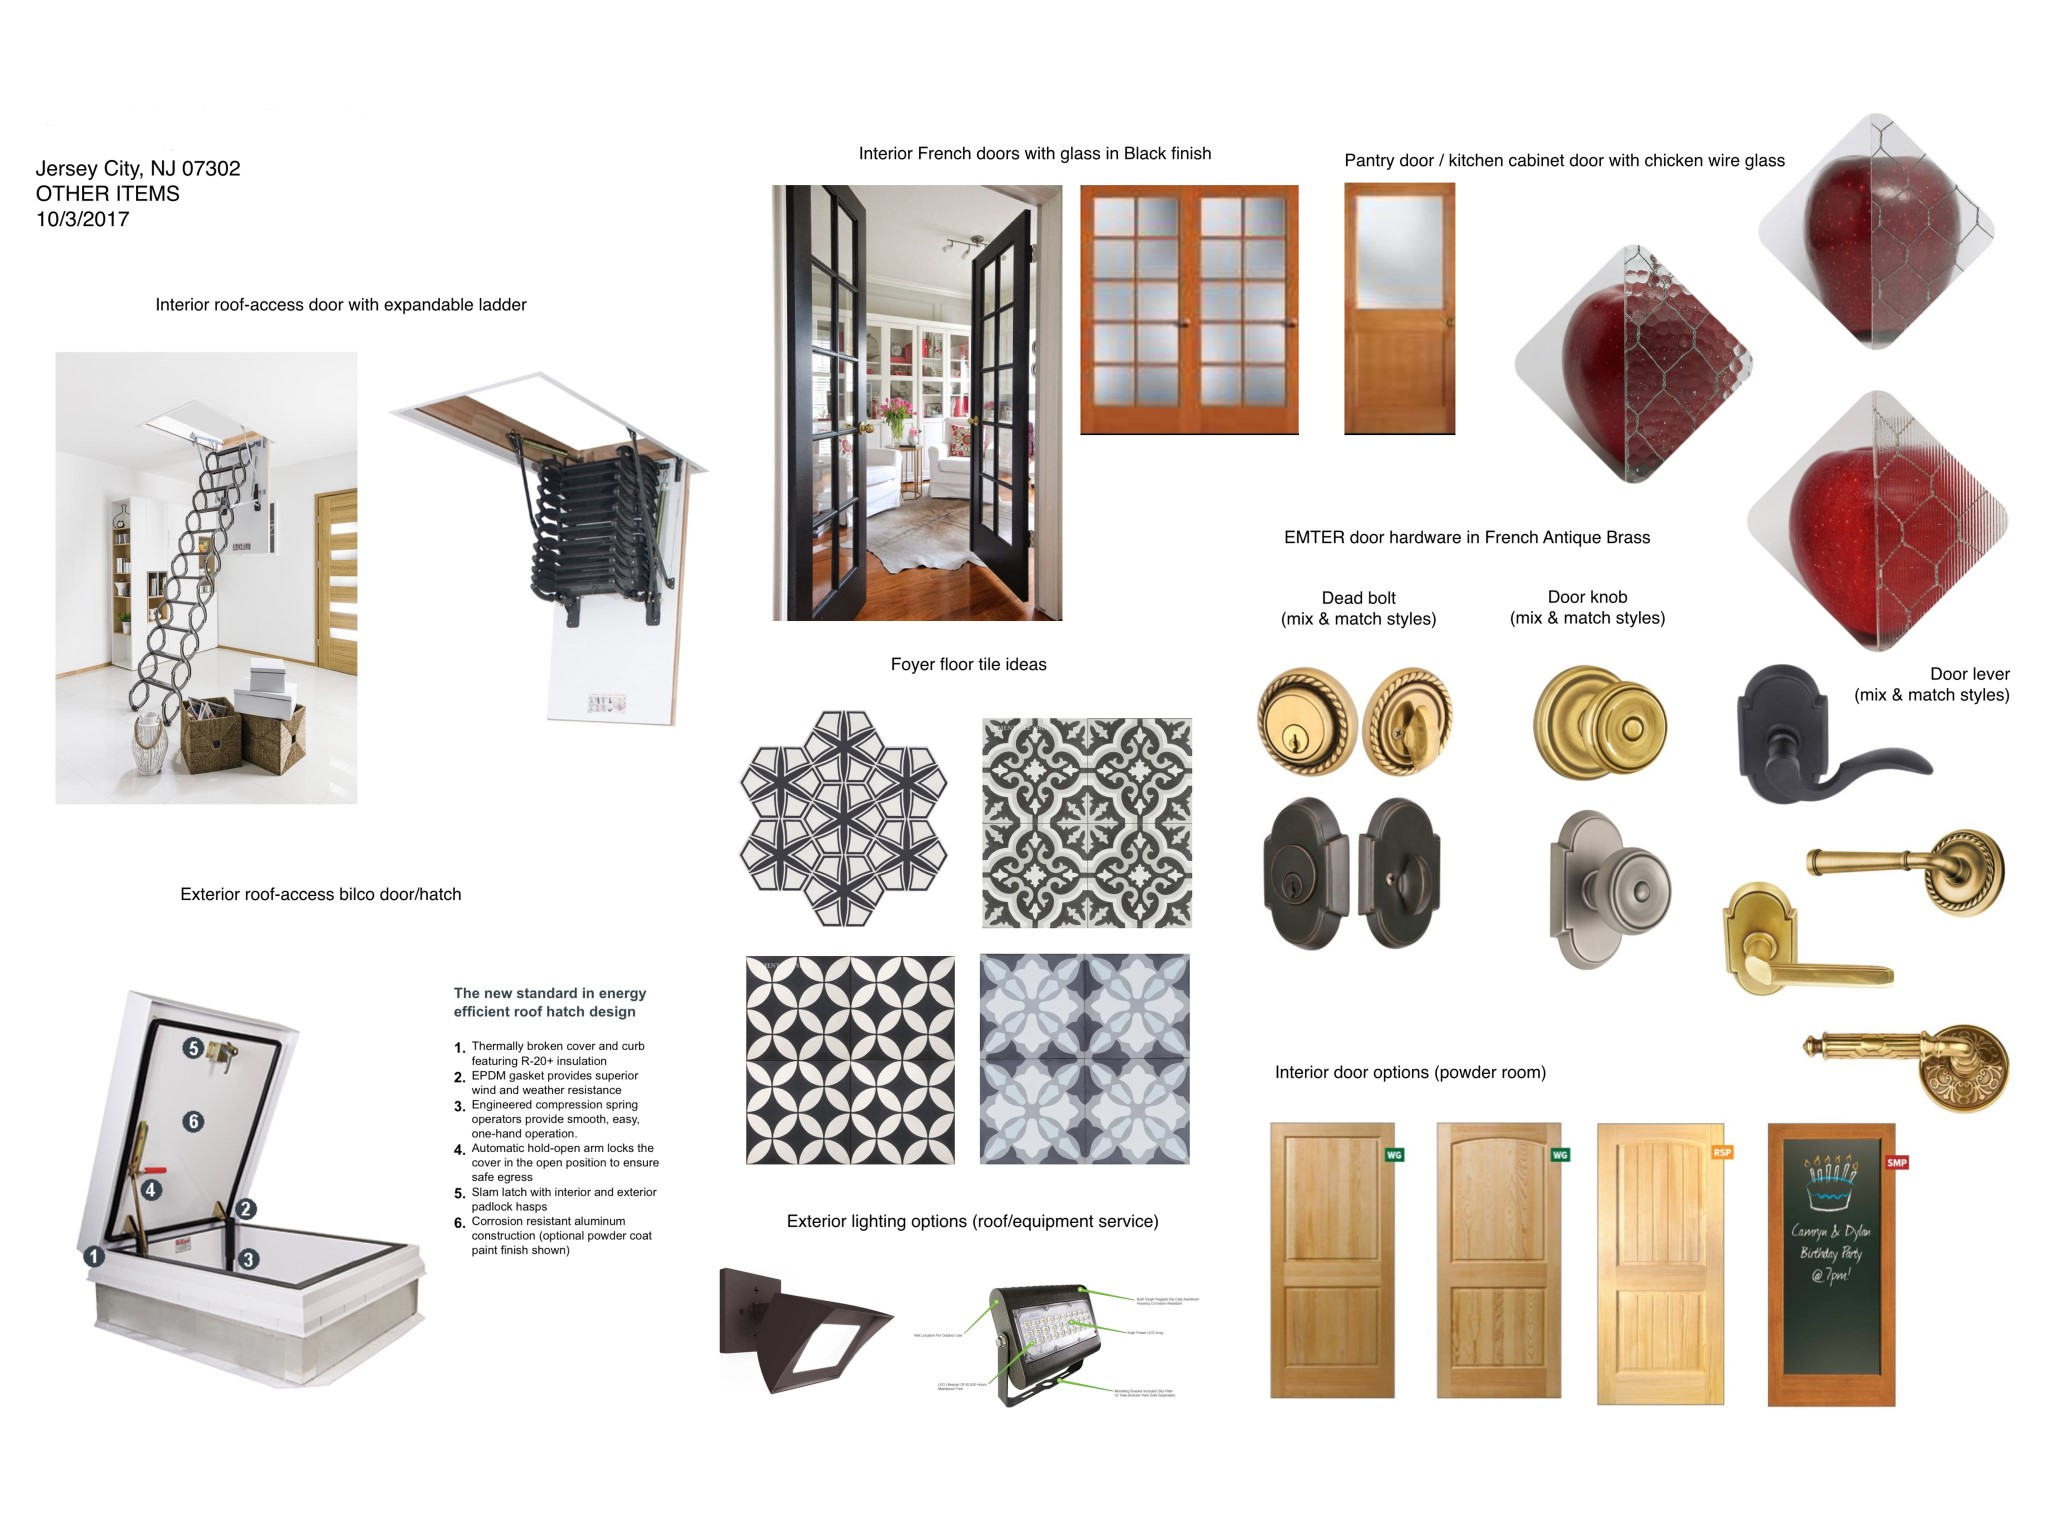 Historic District Brownstone Remodel Project In Process History Revitalized Other Items Mood Board